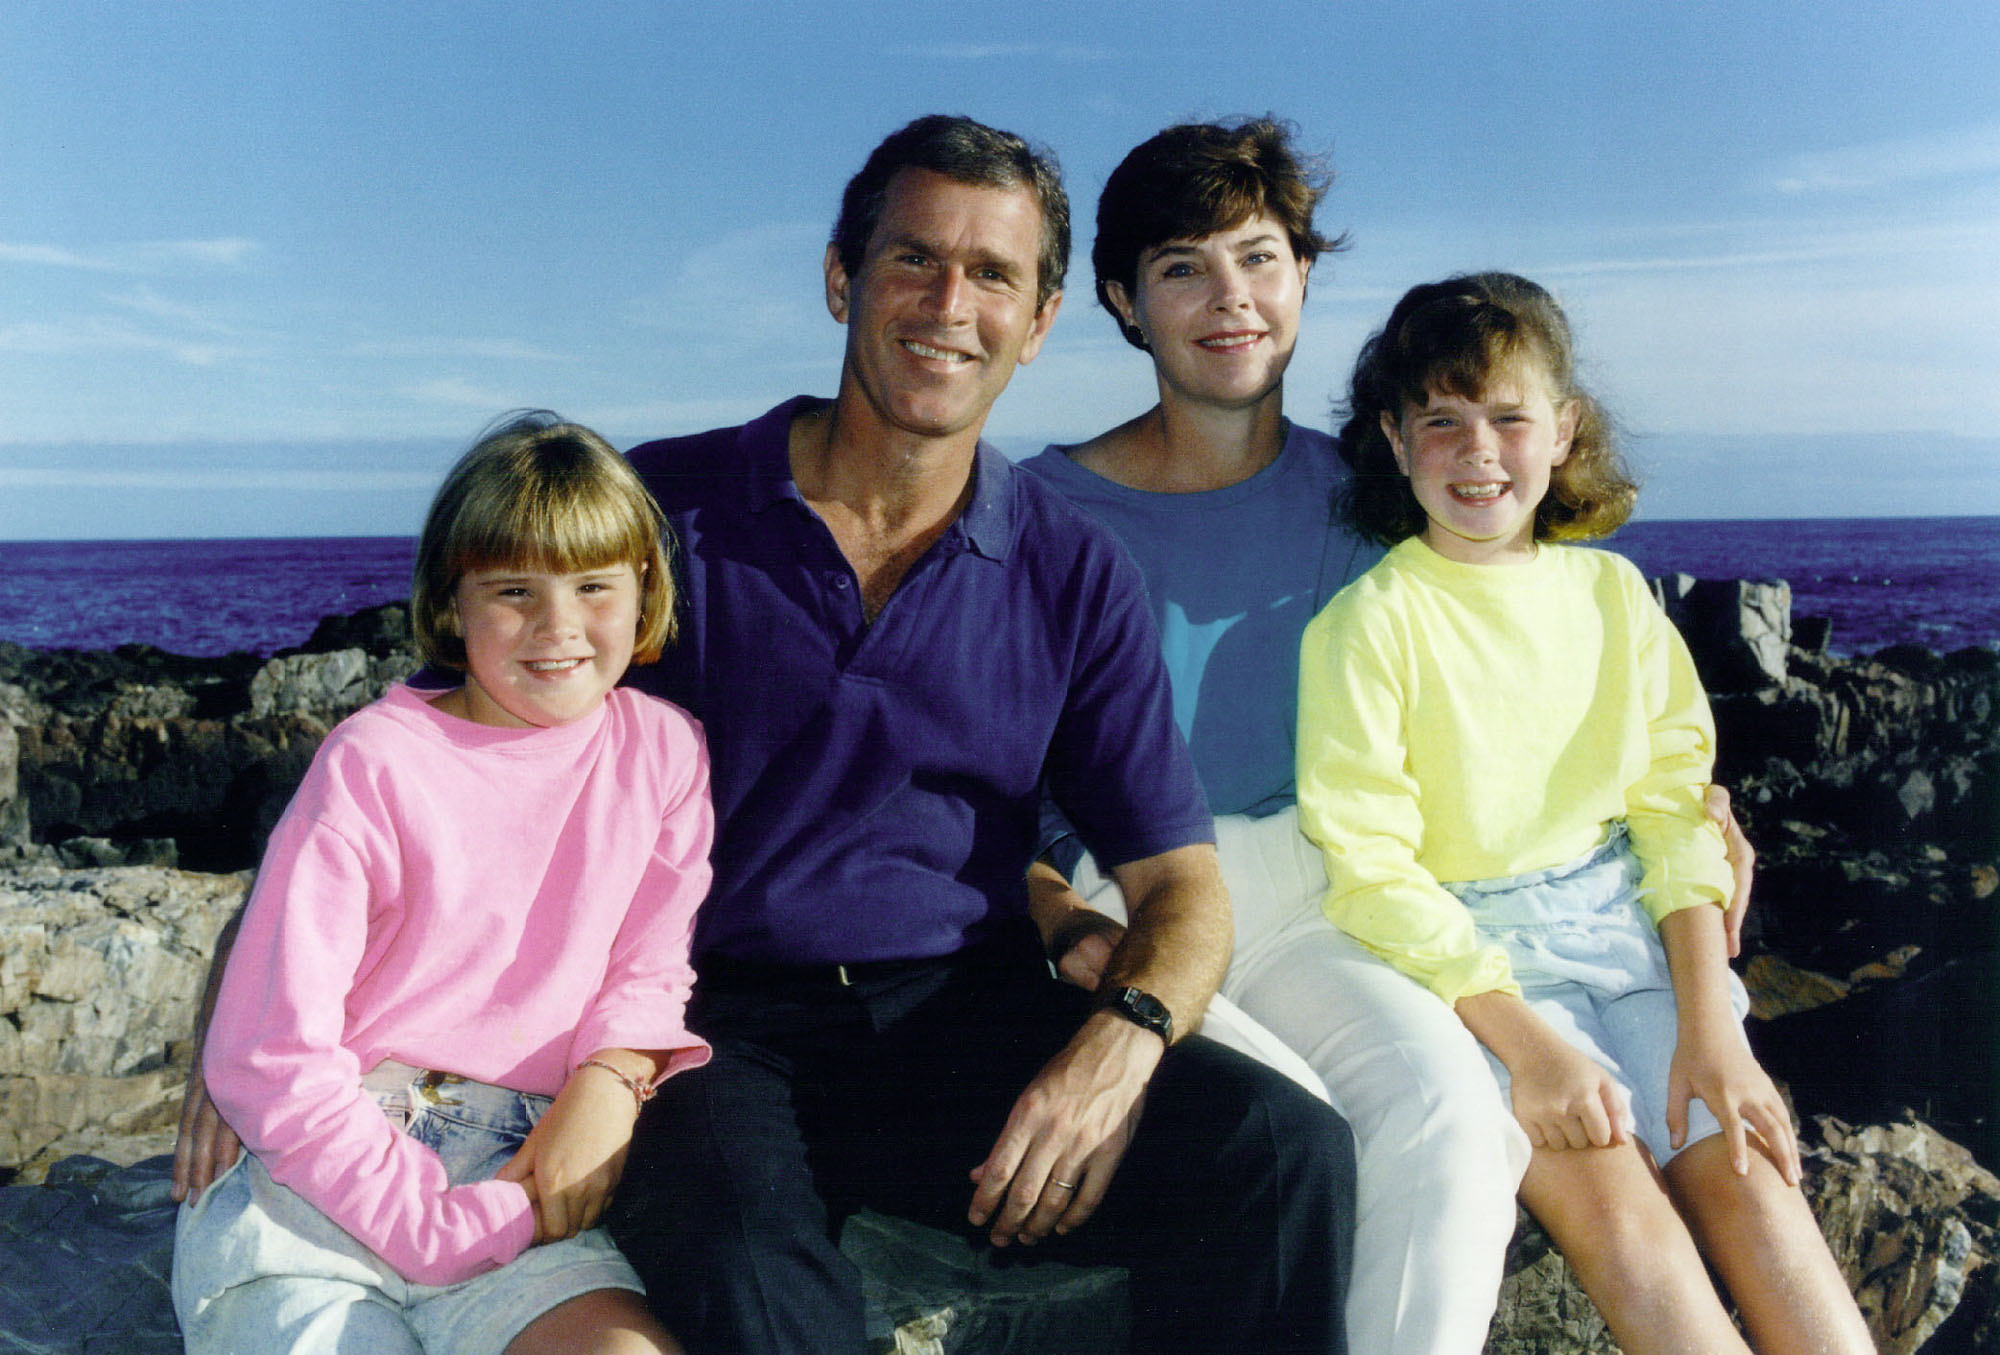 George W. and Laura Bush with their daughters Jenna and Barbara, 1990